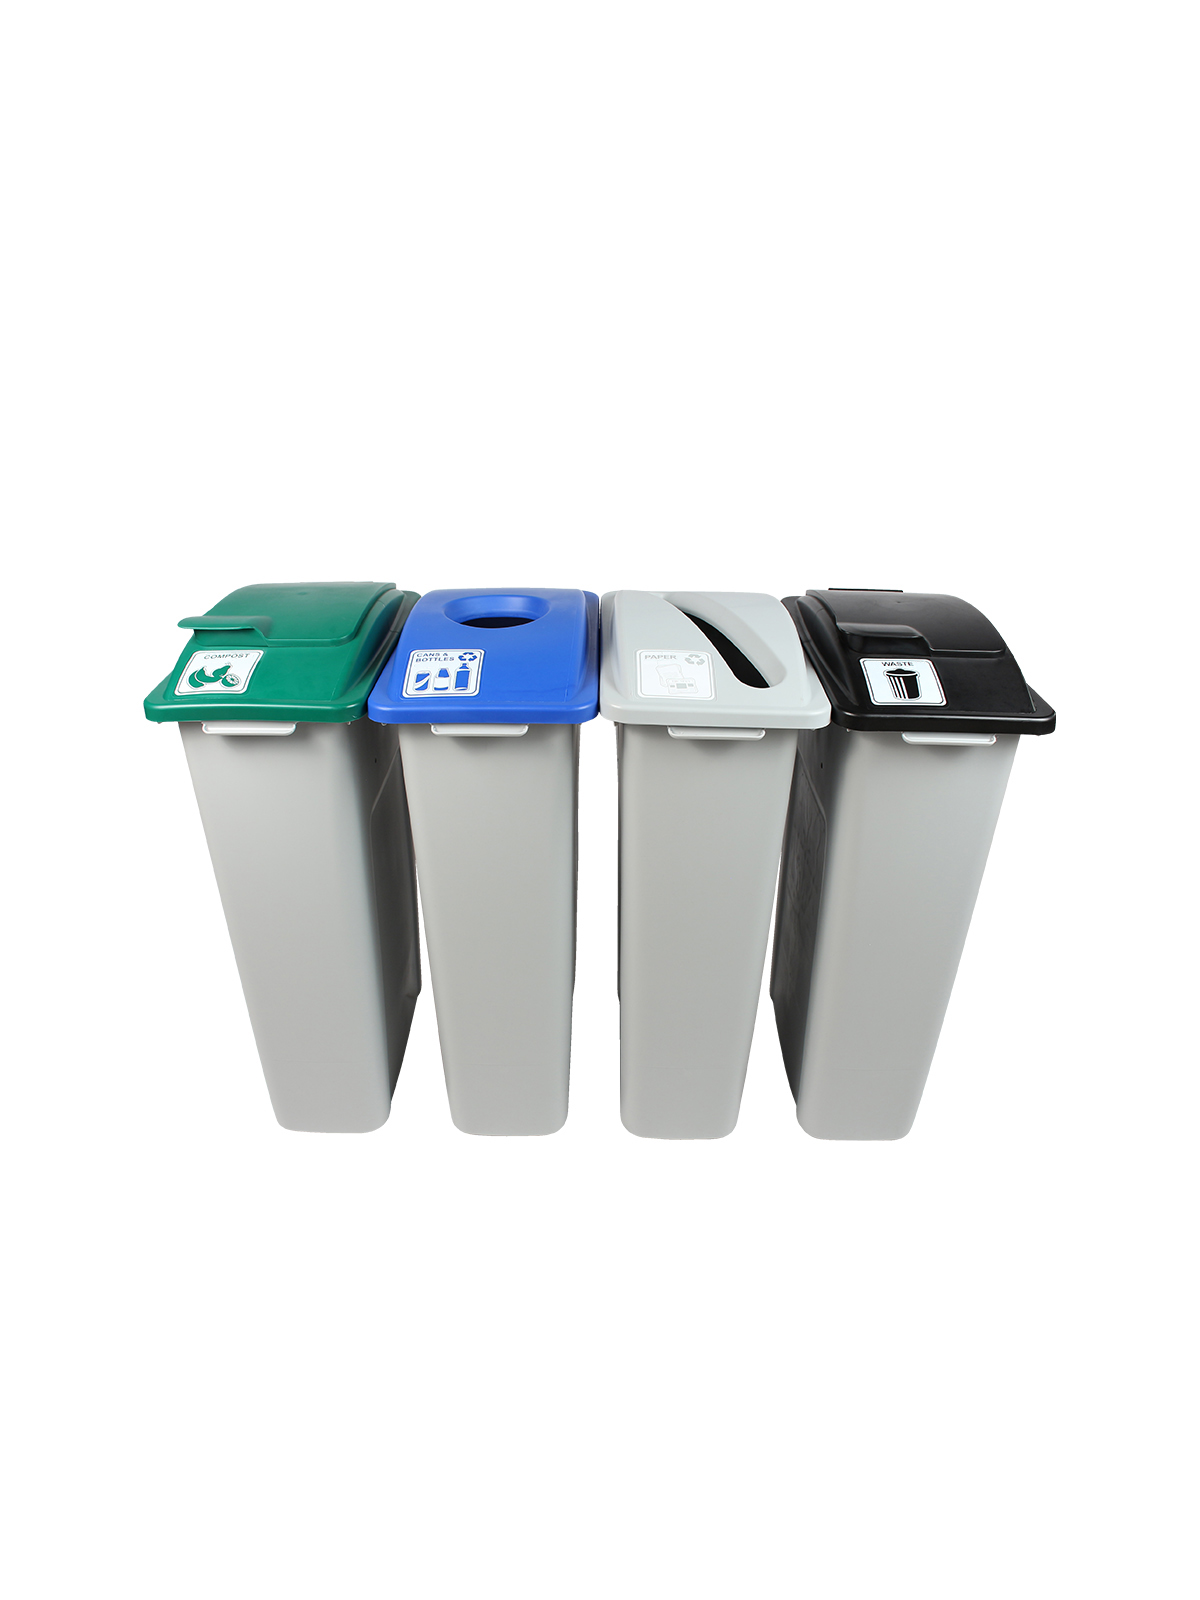 WASTE WATCHER - Quad - Cans & Bottles-Paper-Organics-Waste - Circle-Slot-Solid Lift-Solid Lift - Grey-Blue-Grey-Green-Black